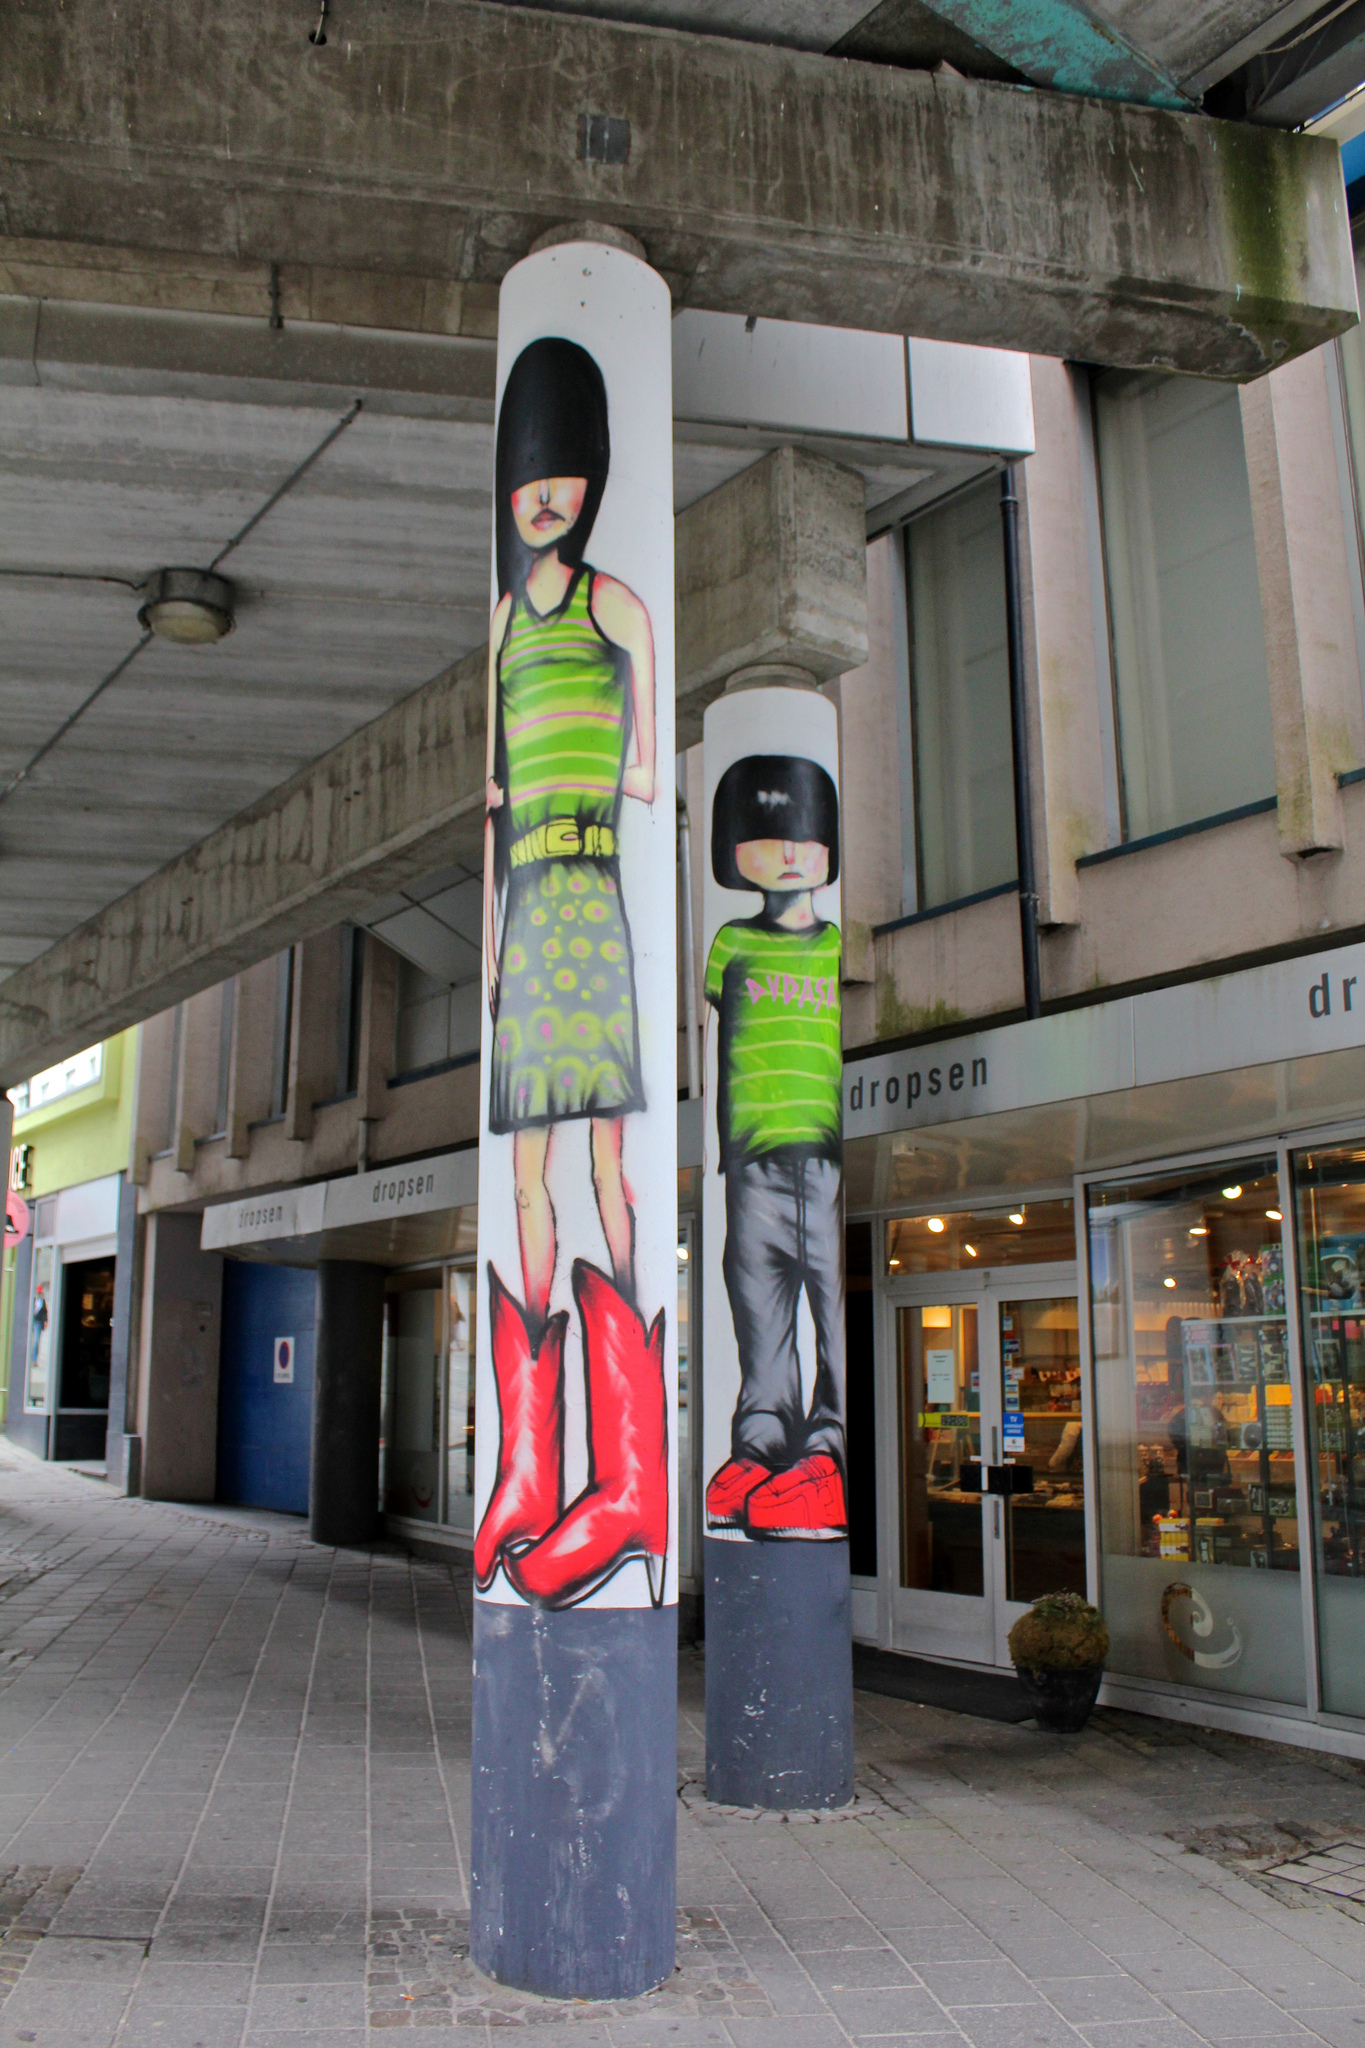 David-Choe-Urban-Art-Nuart-01